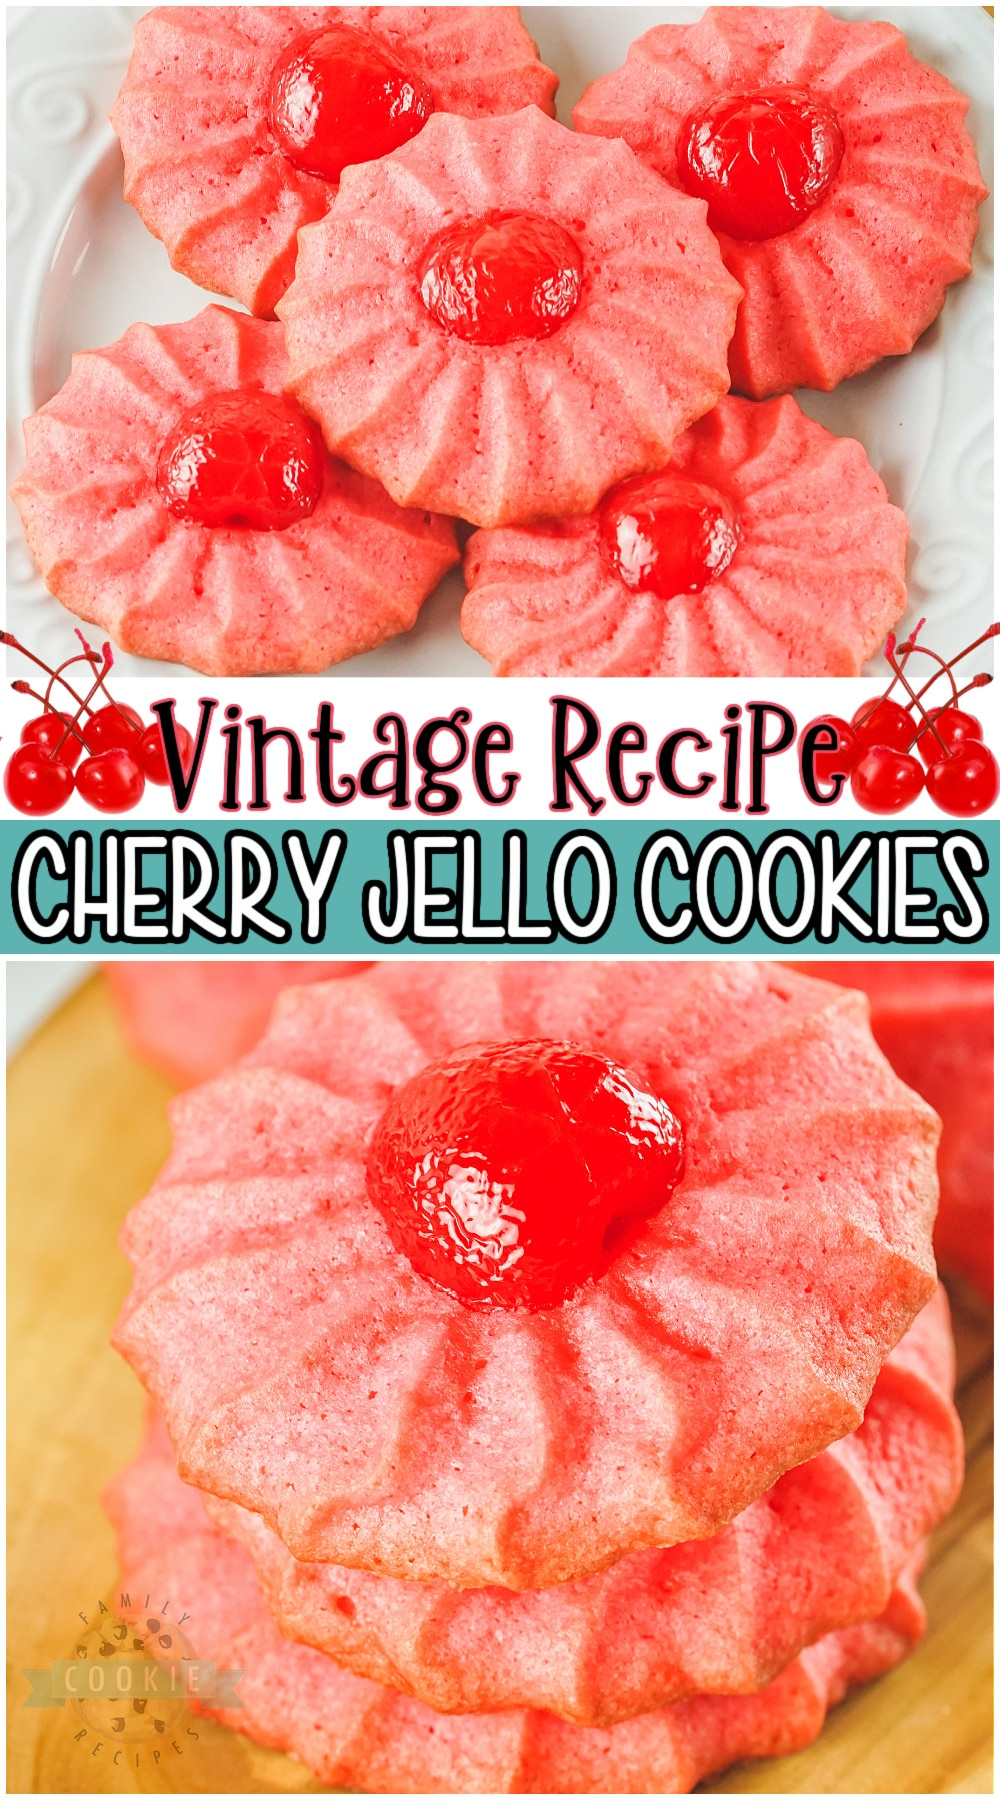 Vintage Cherry Jello cookies are a buttery, delicious cookie with lovely cherry flavor! Classic jello cookie recipe with maraschino cherries perfect for the holidays, or any occasion! #cookies #cherry #jello #vintage #baking #holidays #easyrecipe from FAMILY COOKIE RECIPES via @buttergirls